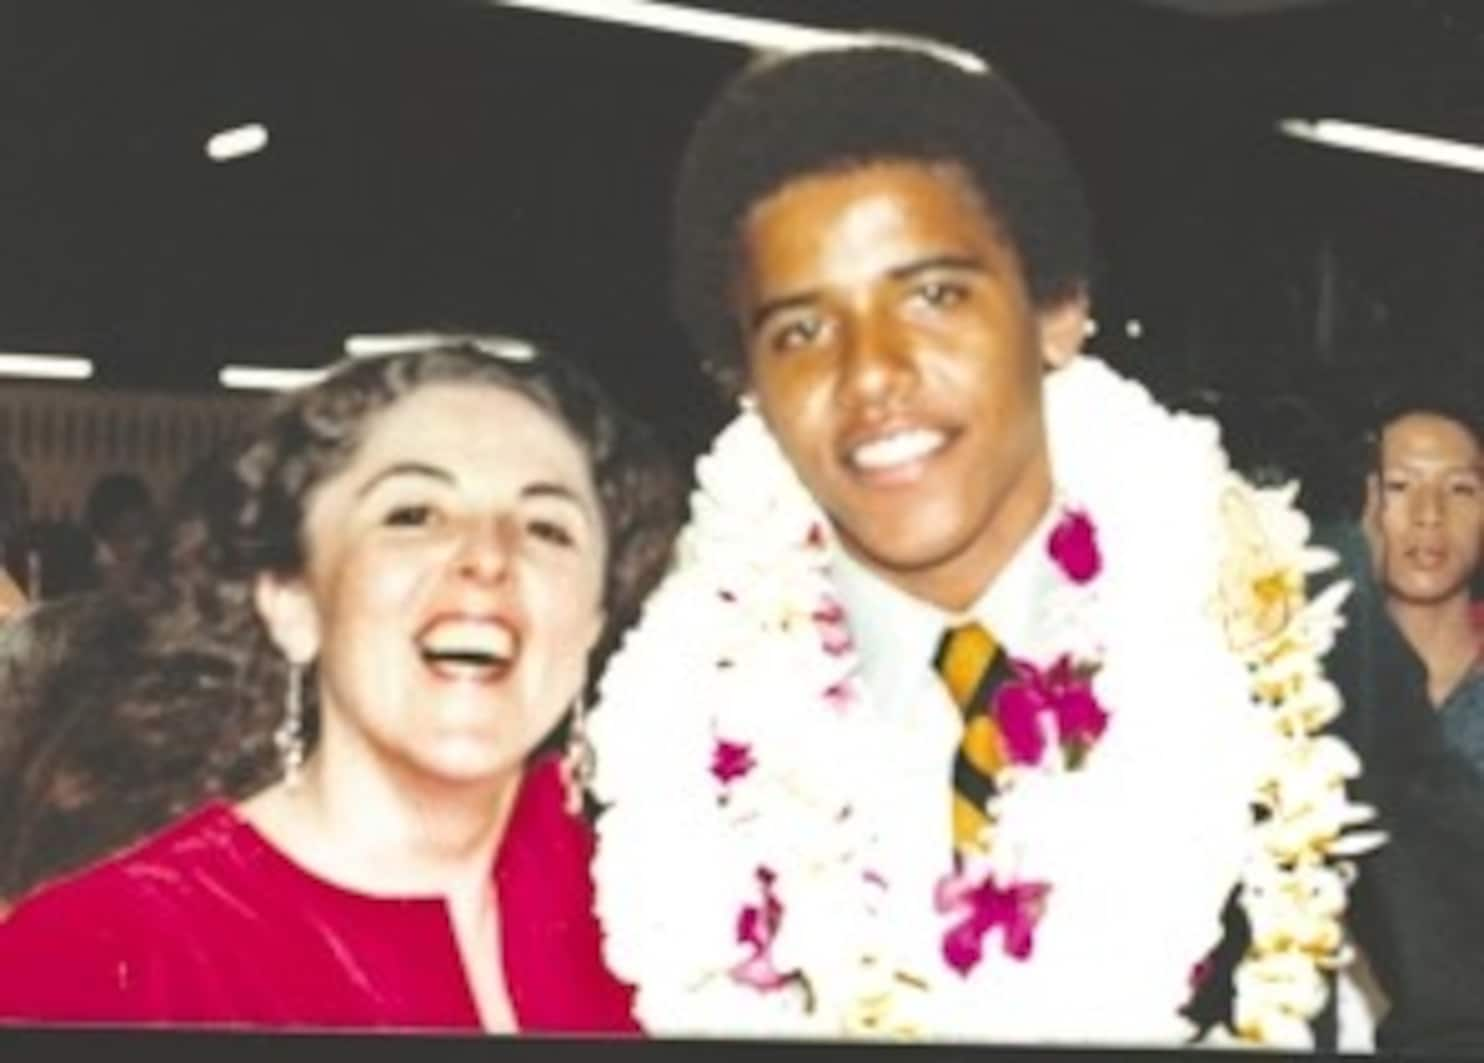 The 44th president was his mother's son - The Washington Post